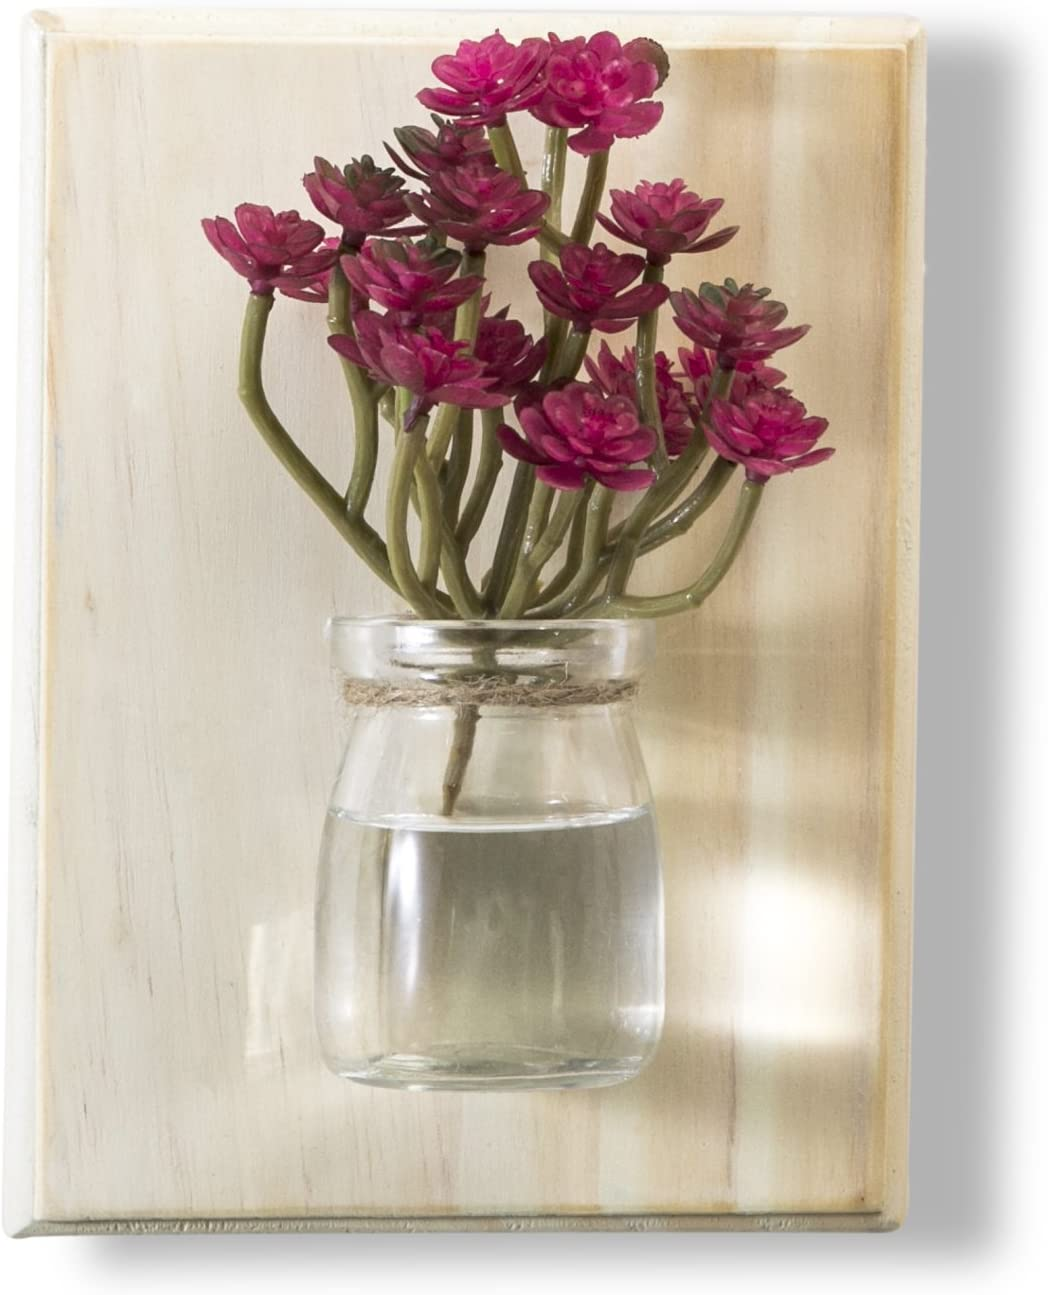 WOOD MEETS COLOR Hanging Vase, Creative Handcrafted Plant Pot Wall Potting, Flower Succulent Container, Home Decoration (Light White)